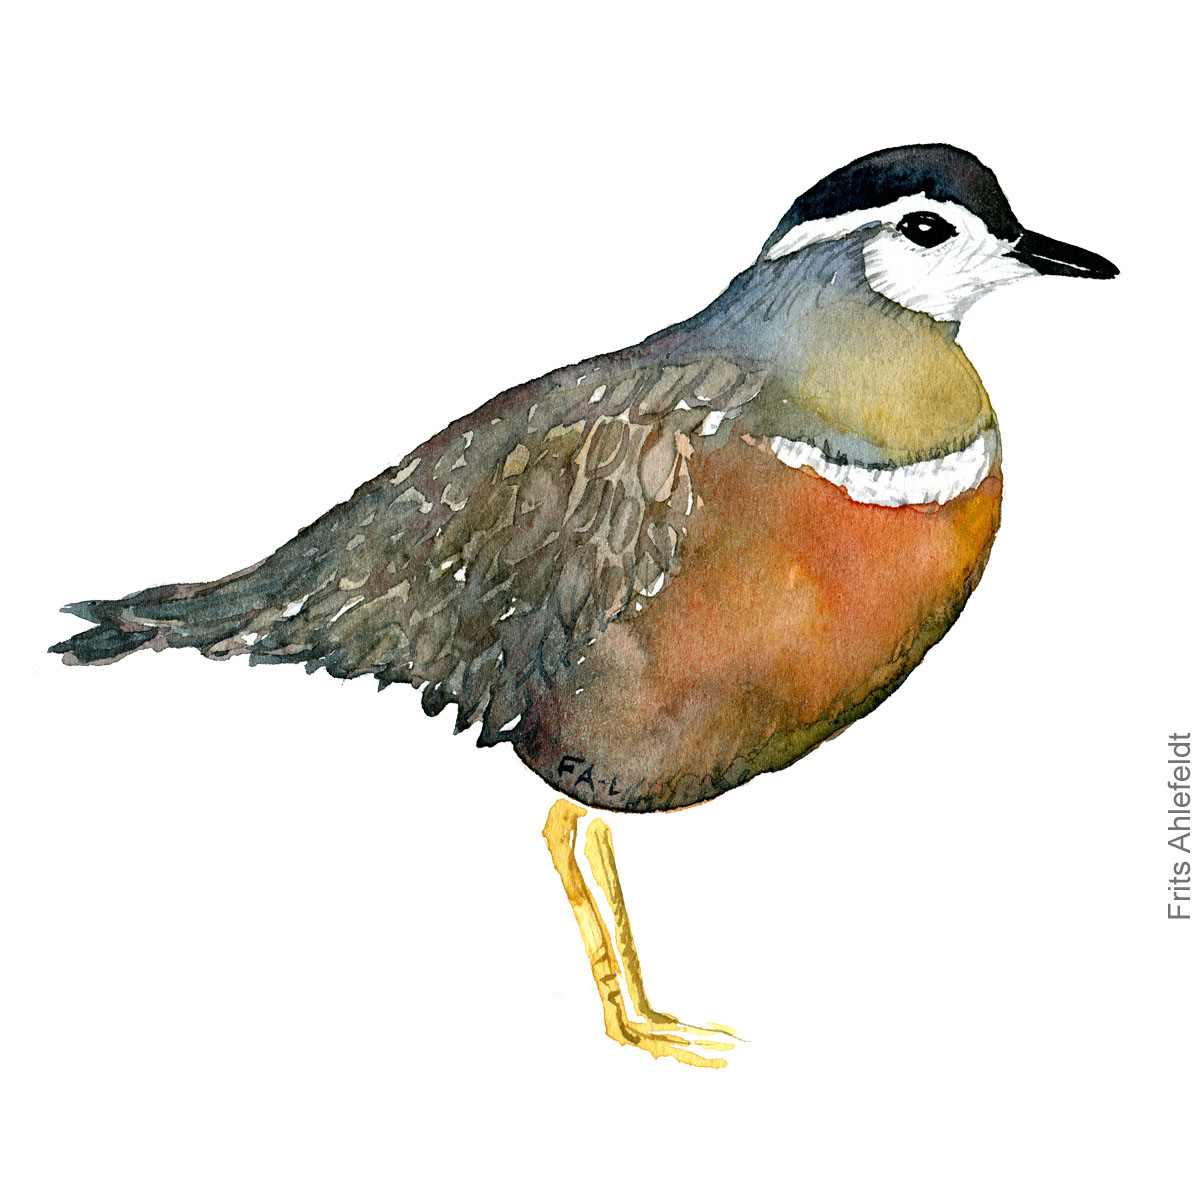 Watercolor illustration Eurasian Dotterel female ( Pomeransfugl - Charadrius morinellus ) Painting by Frits Ahlefeldt